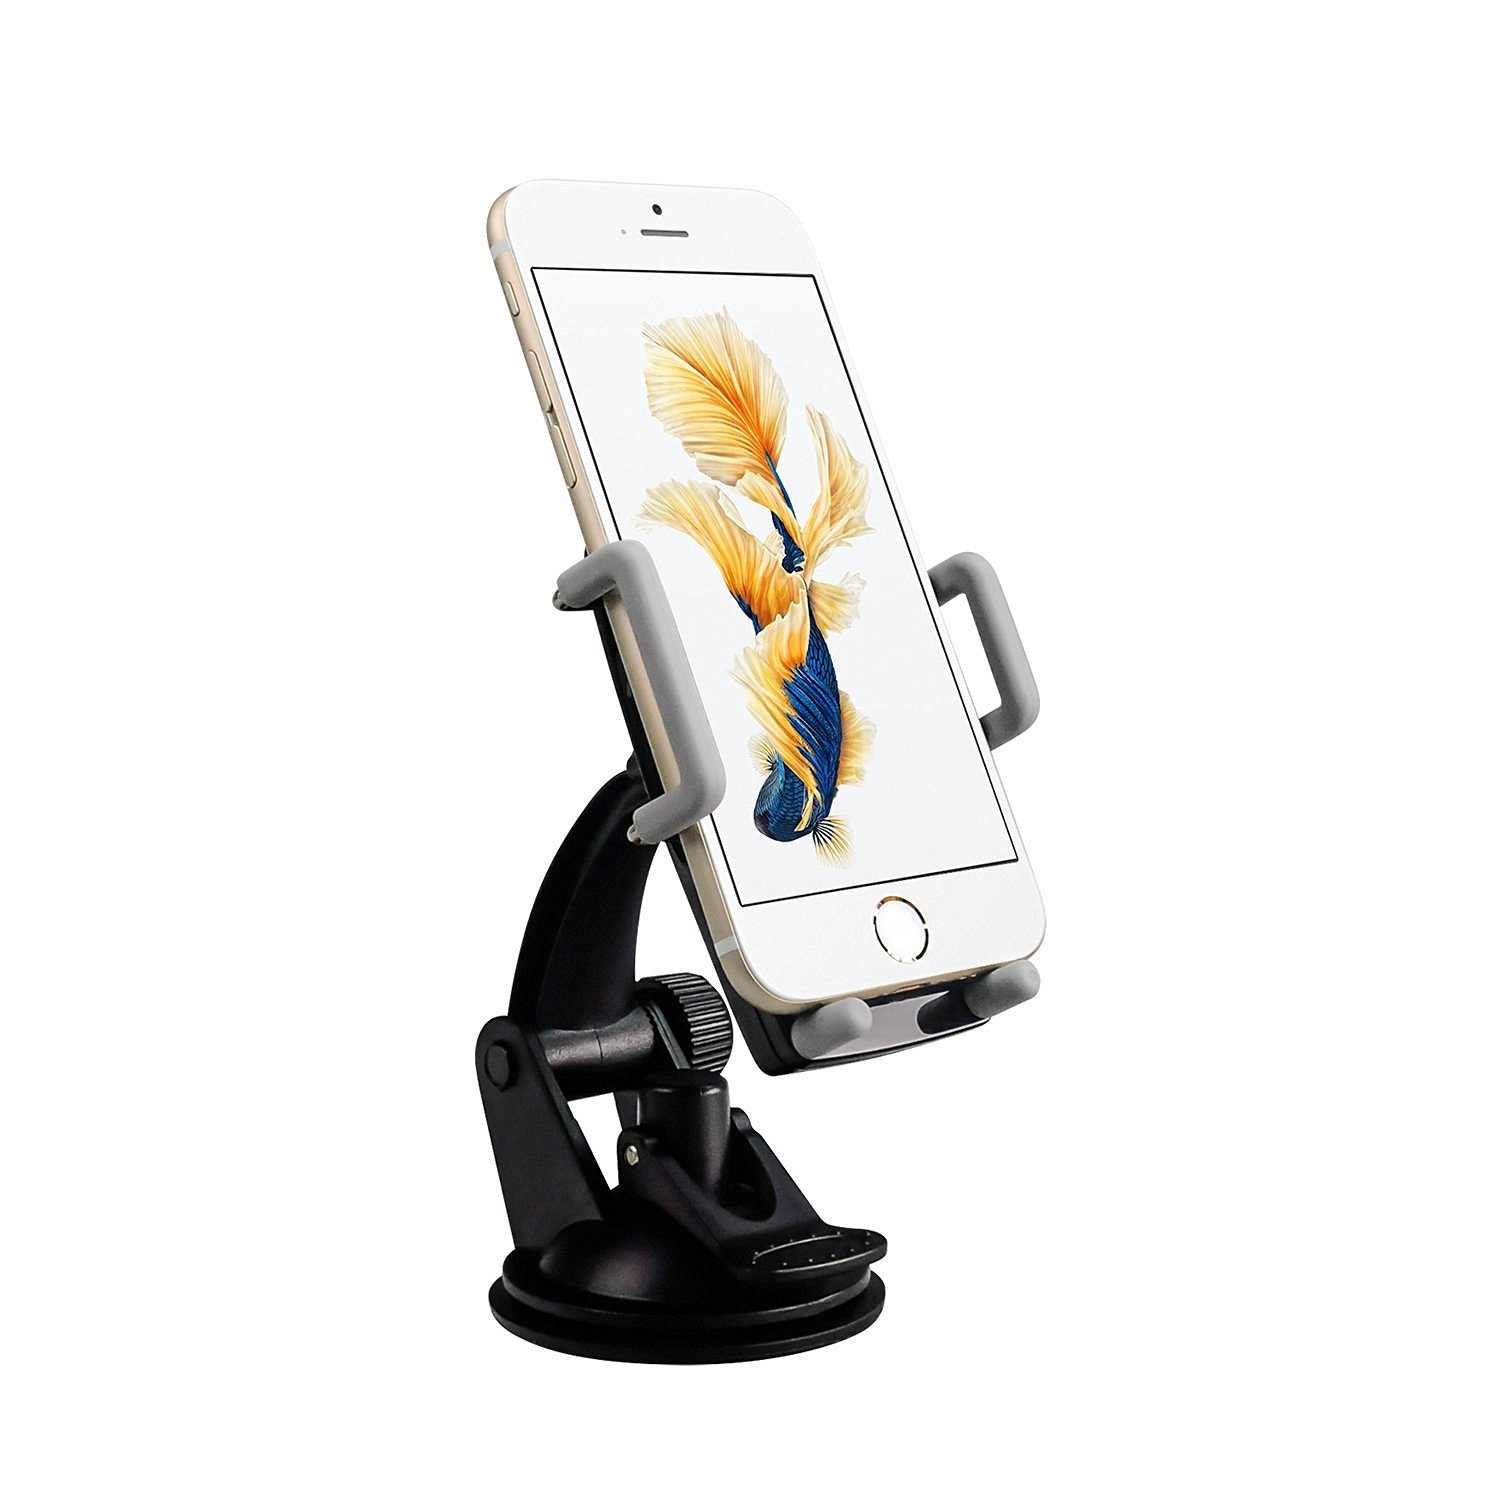 Pawtec Smartphone Car Mount Windshield Dashboard 360 Degree Adjustable for iPhone Android